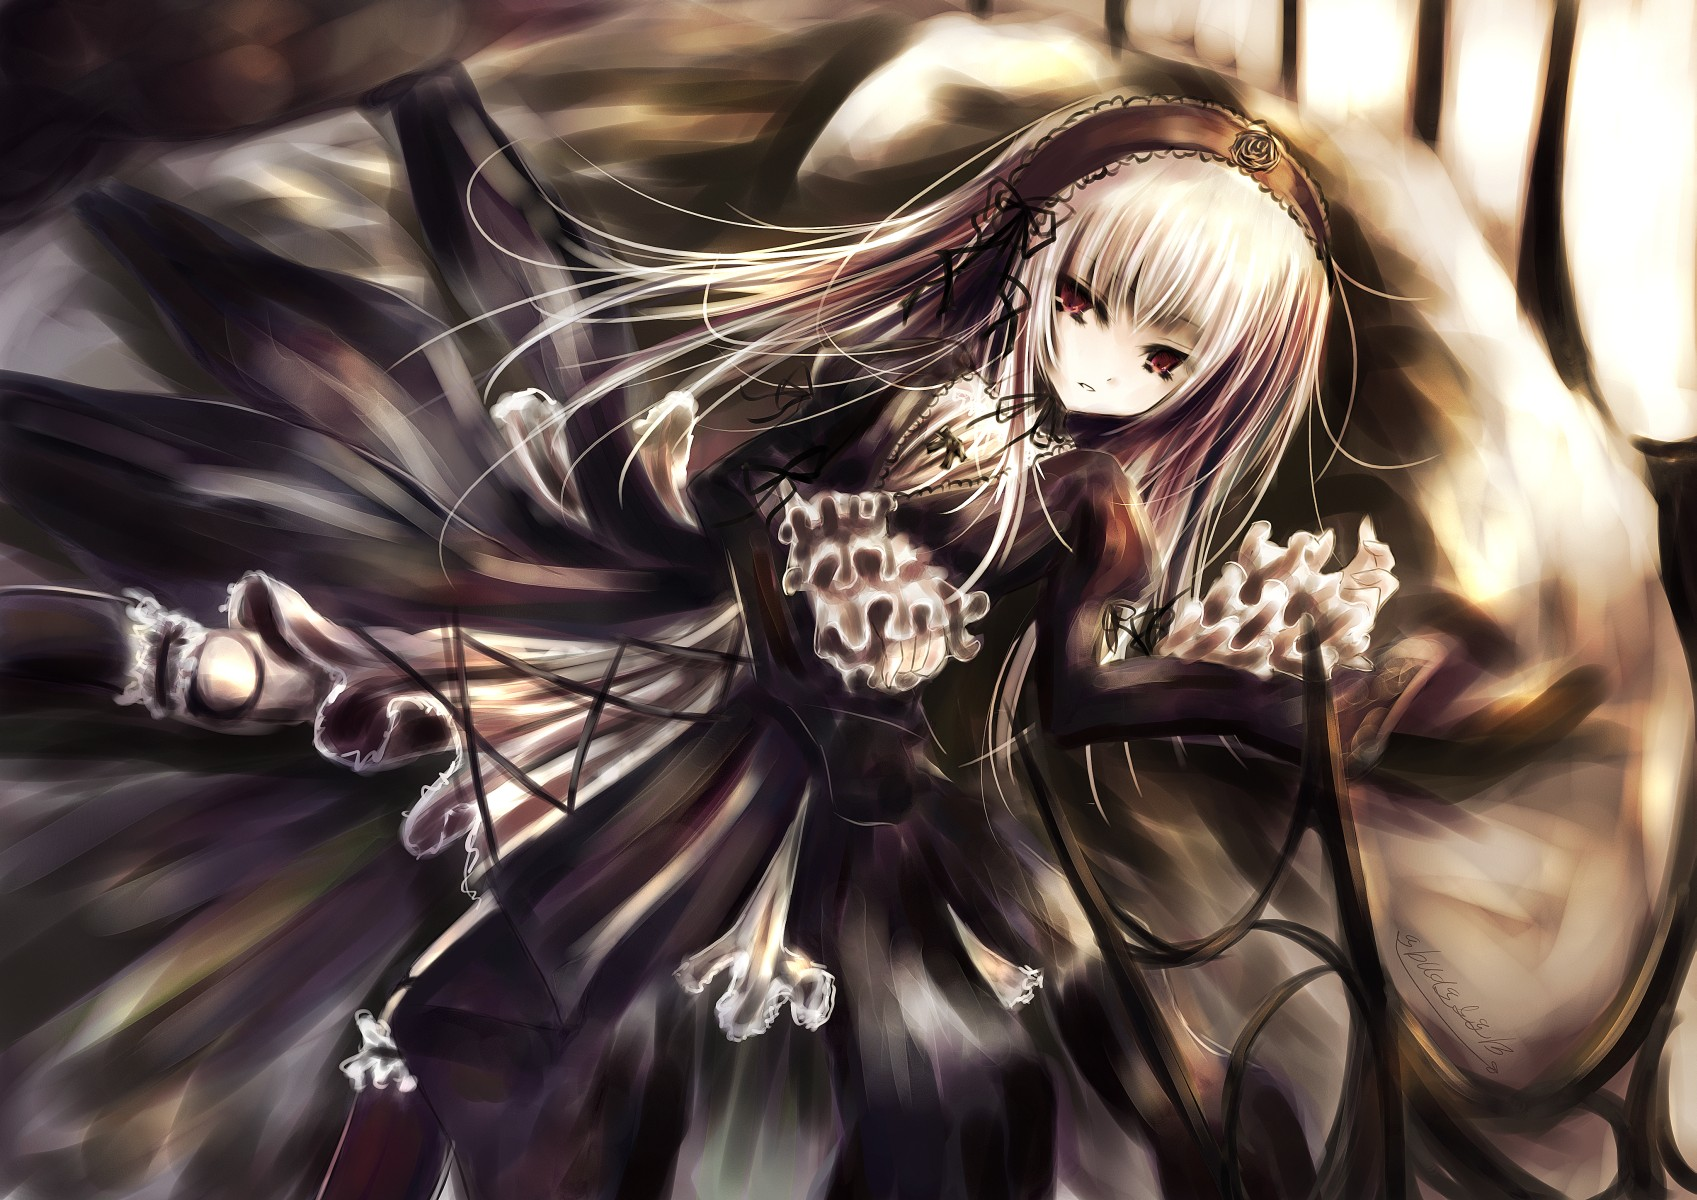 -Rozen-Maiden-Suigintou-Fresh-New-Hd-Wallpaper--